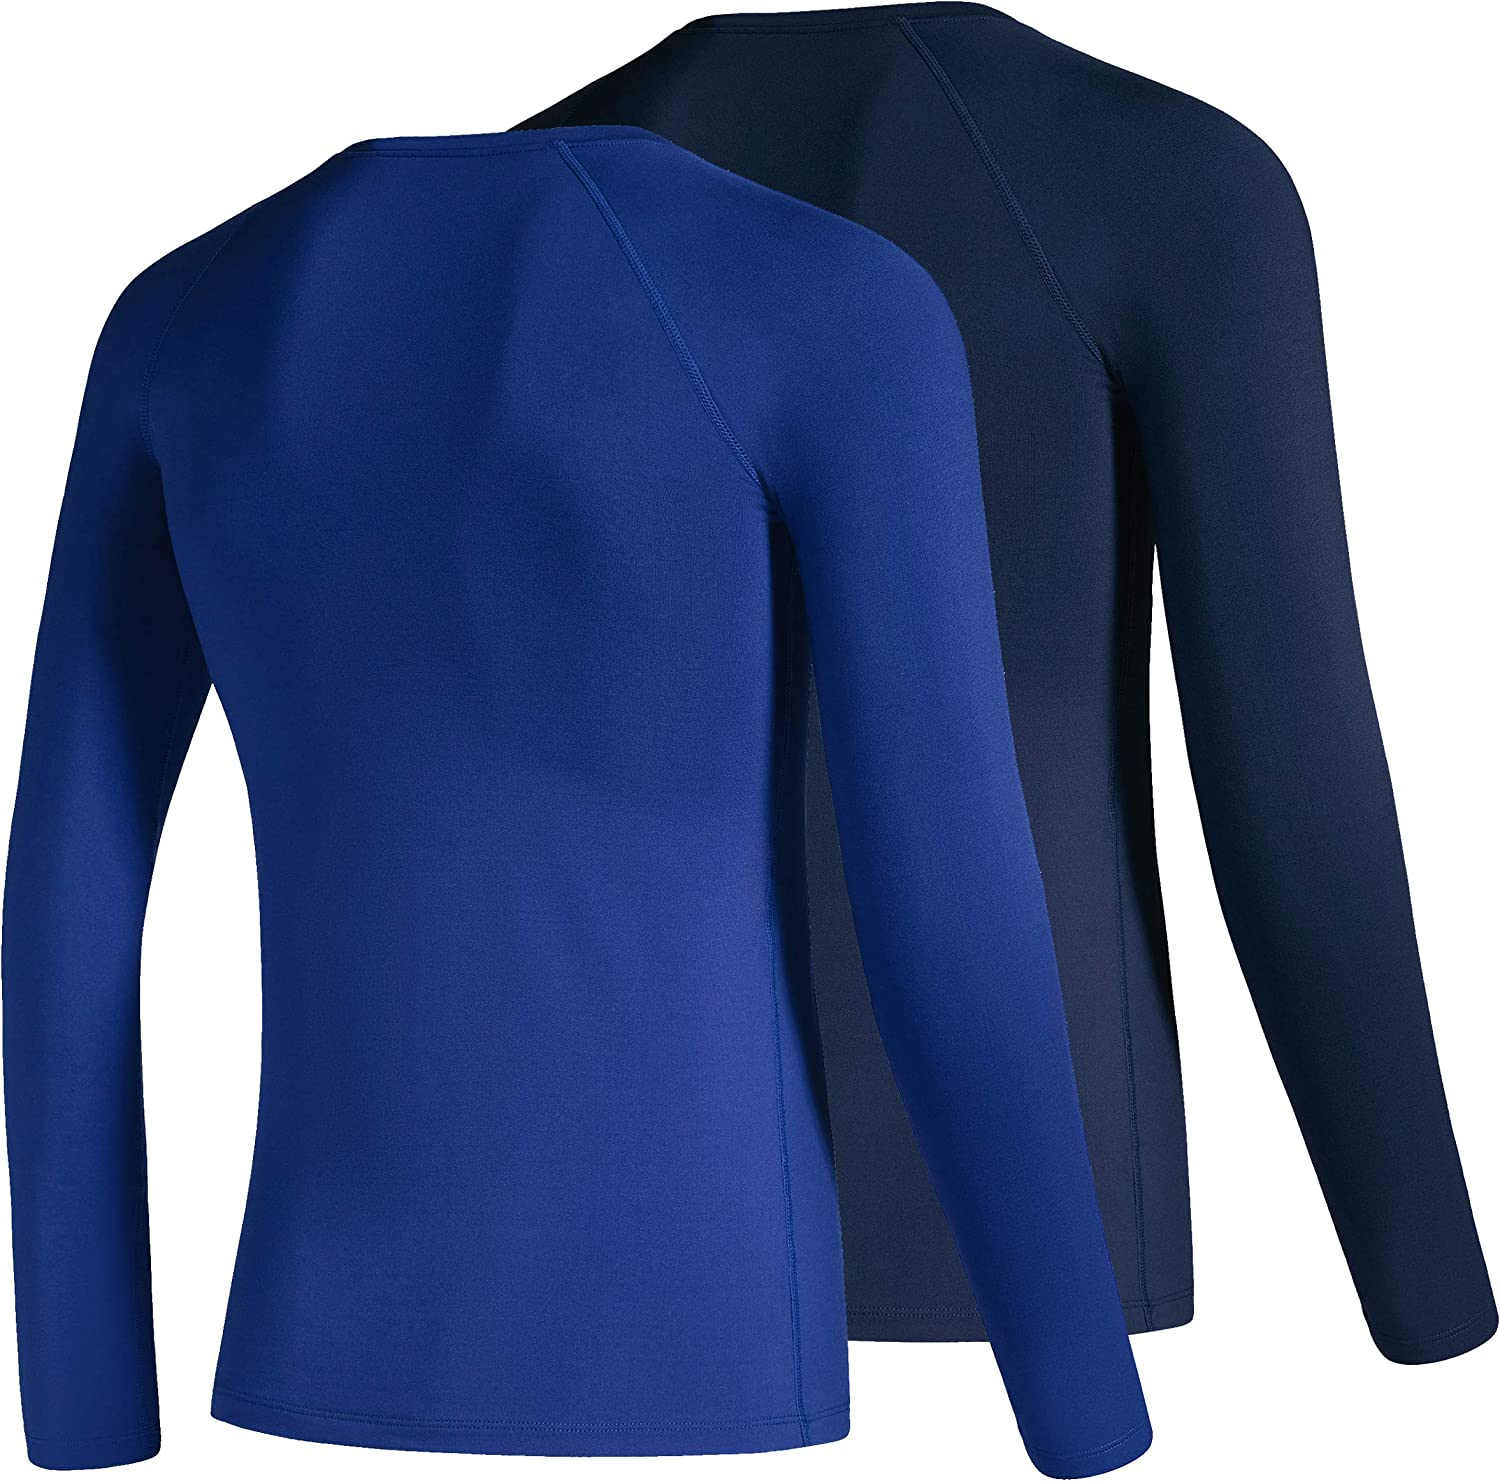 Boys Compression Shirt Youth Fleece Thermal Long Sleeve Cold Gear Undershirts for Boys